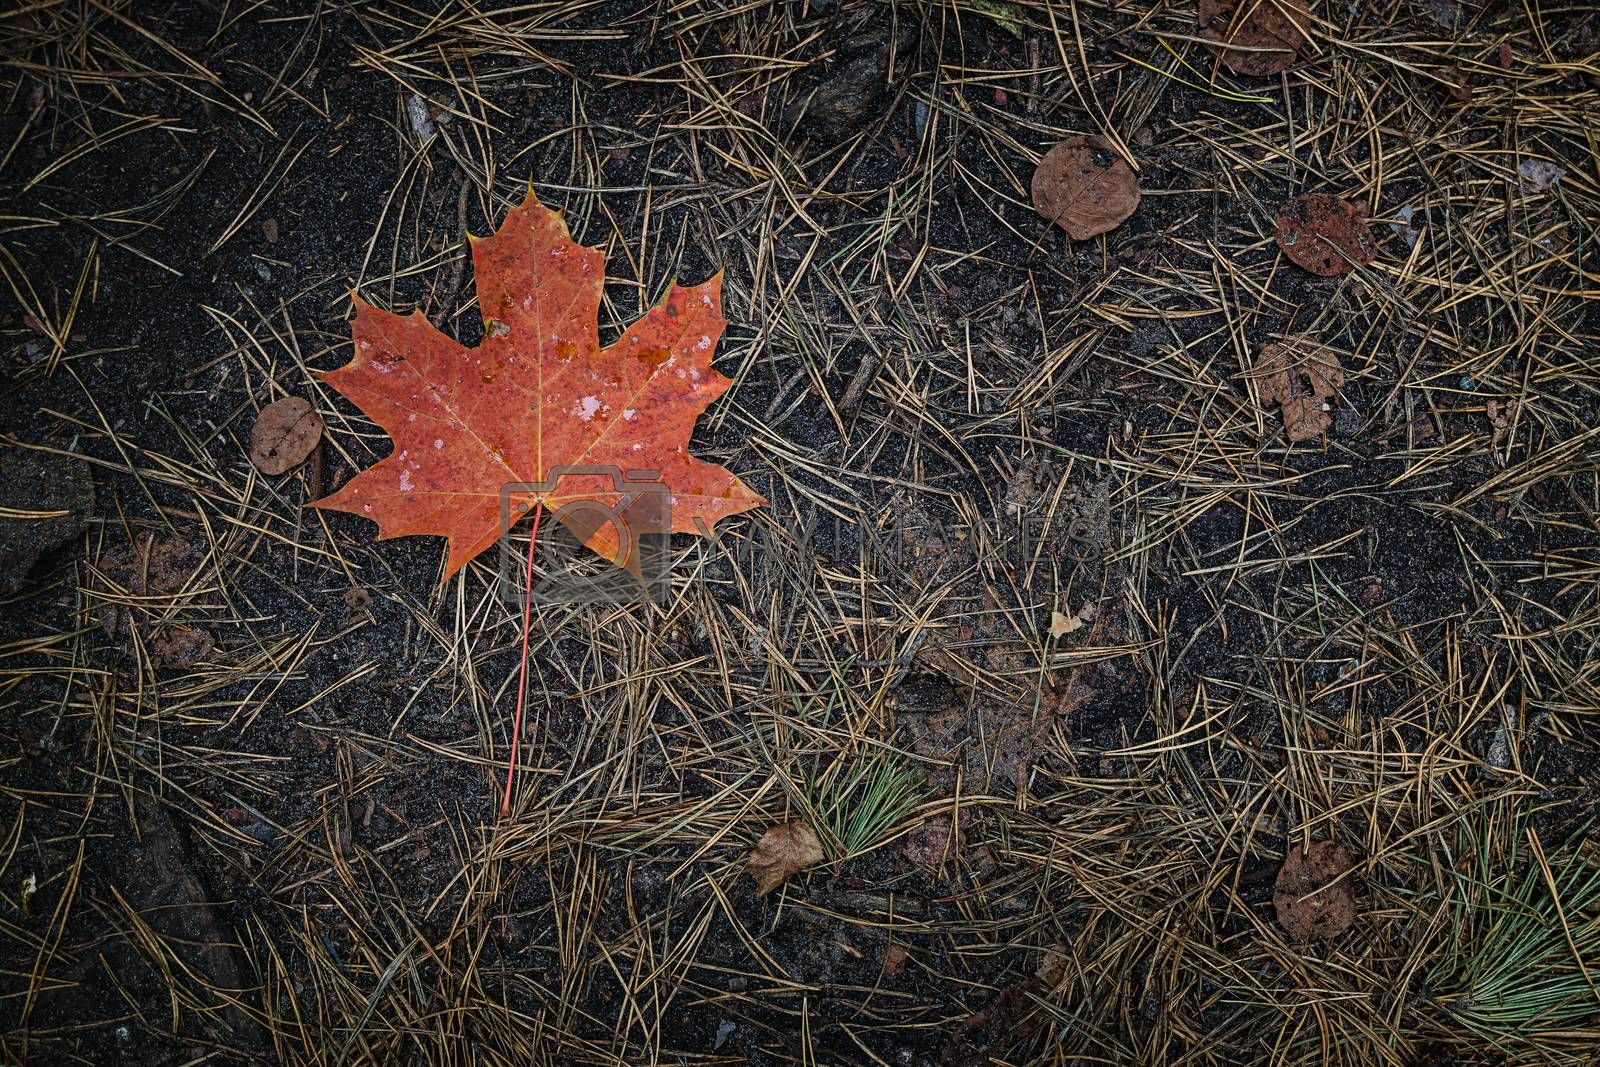 Royalty free image of The red-orange fallen maple leaf lies on dark ground with pine needles in the forest. Save the space. View from above. by Tanacha